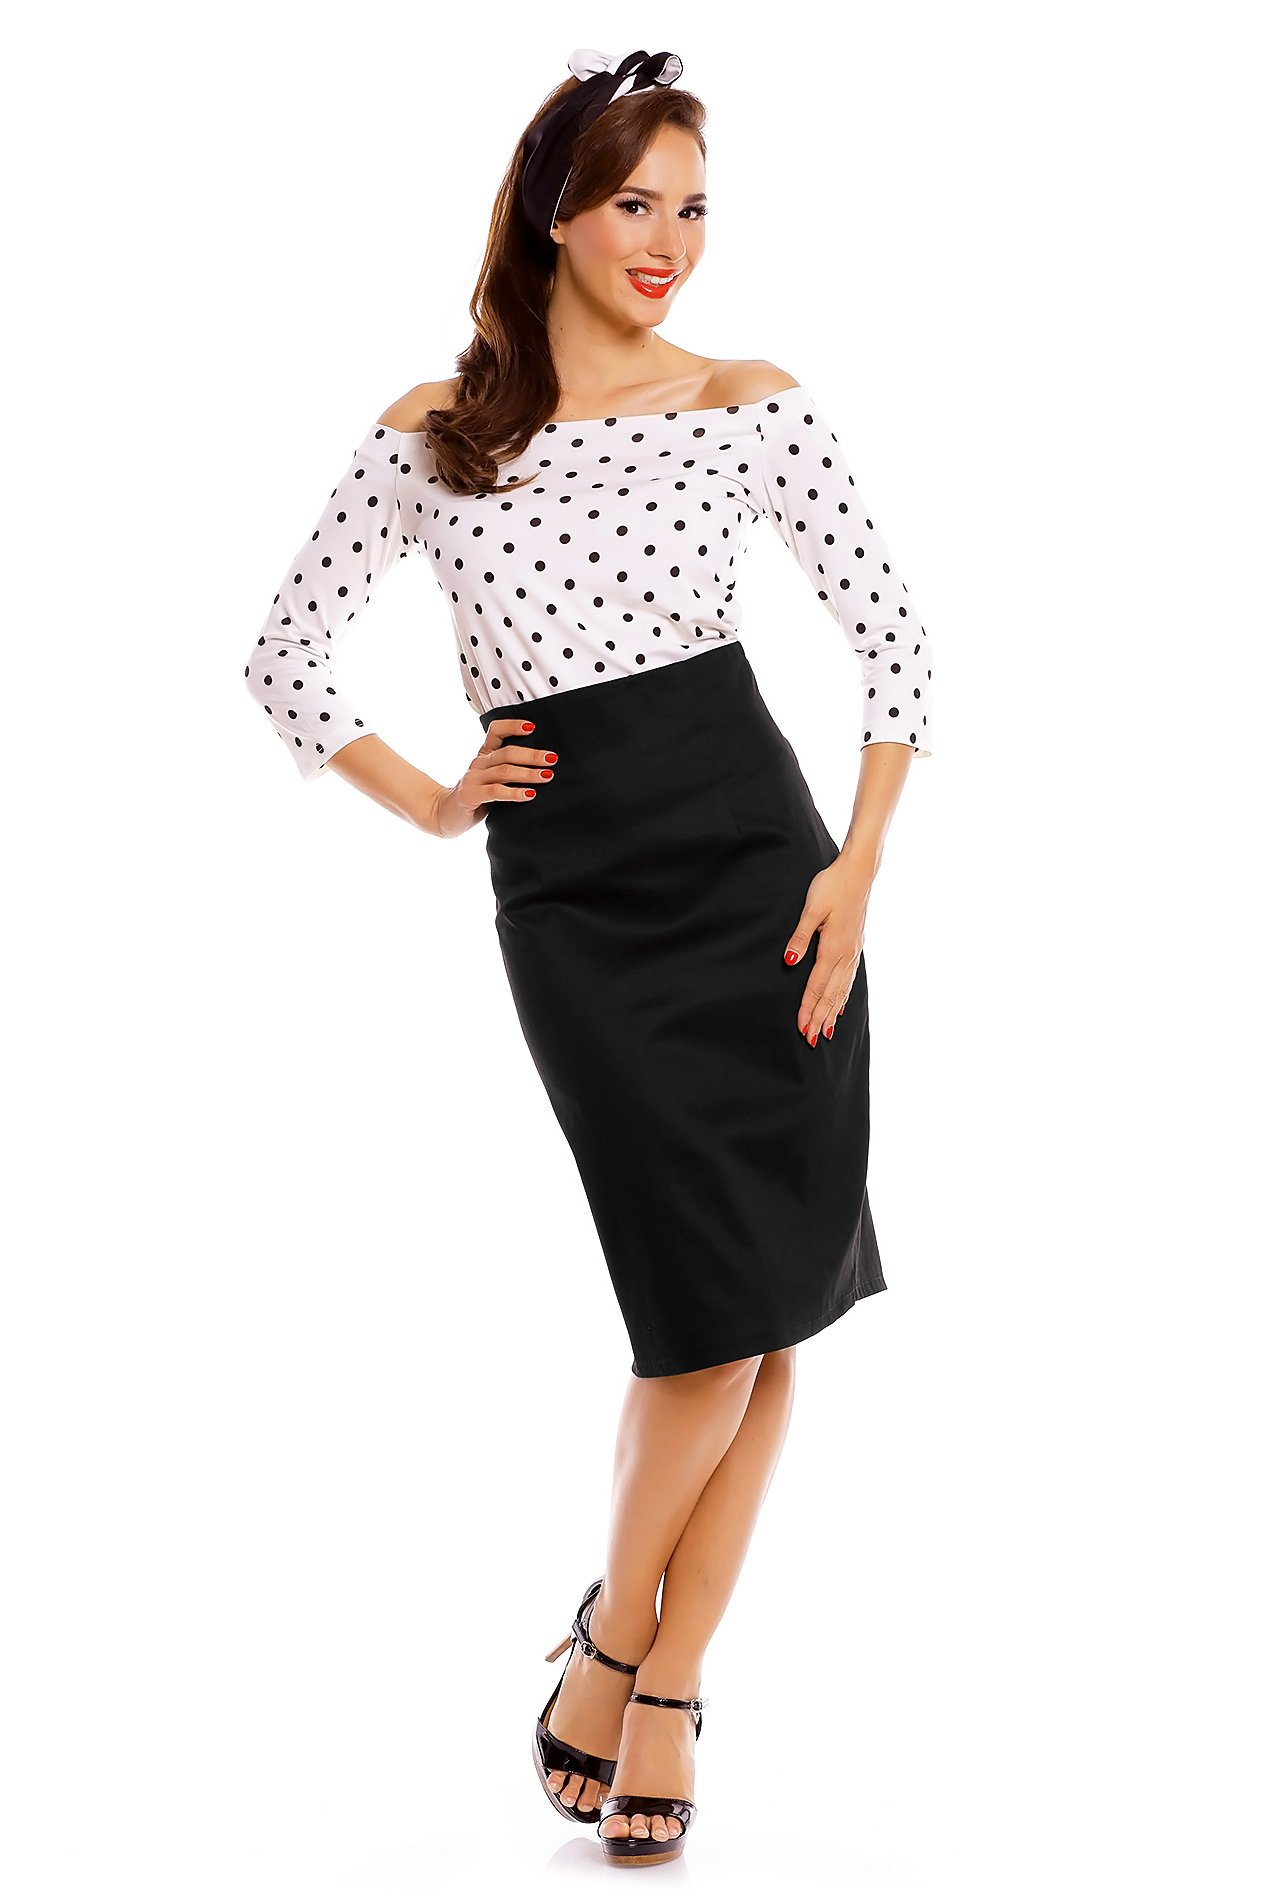 Girl in a pencil skirt